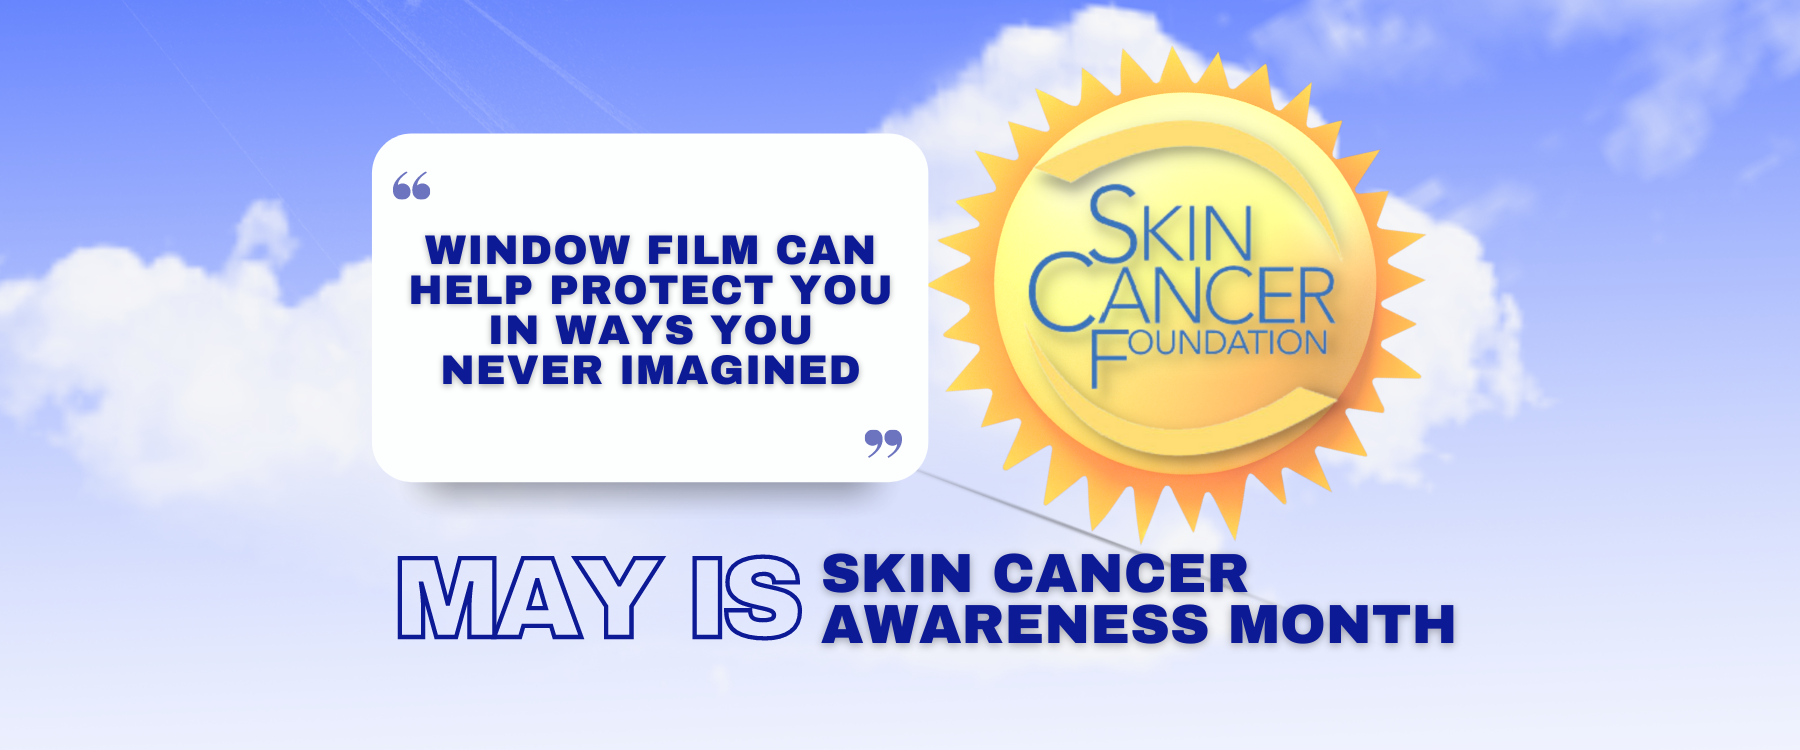 May Is Skin Cancer Awareness Month - See How Window Film Helps - Window Film and Window Tinting Services in Western Michigan